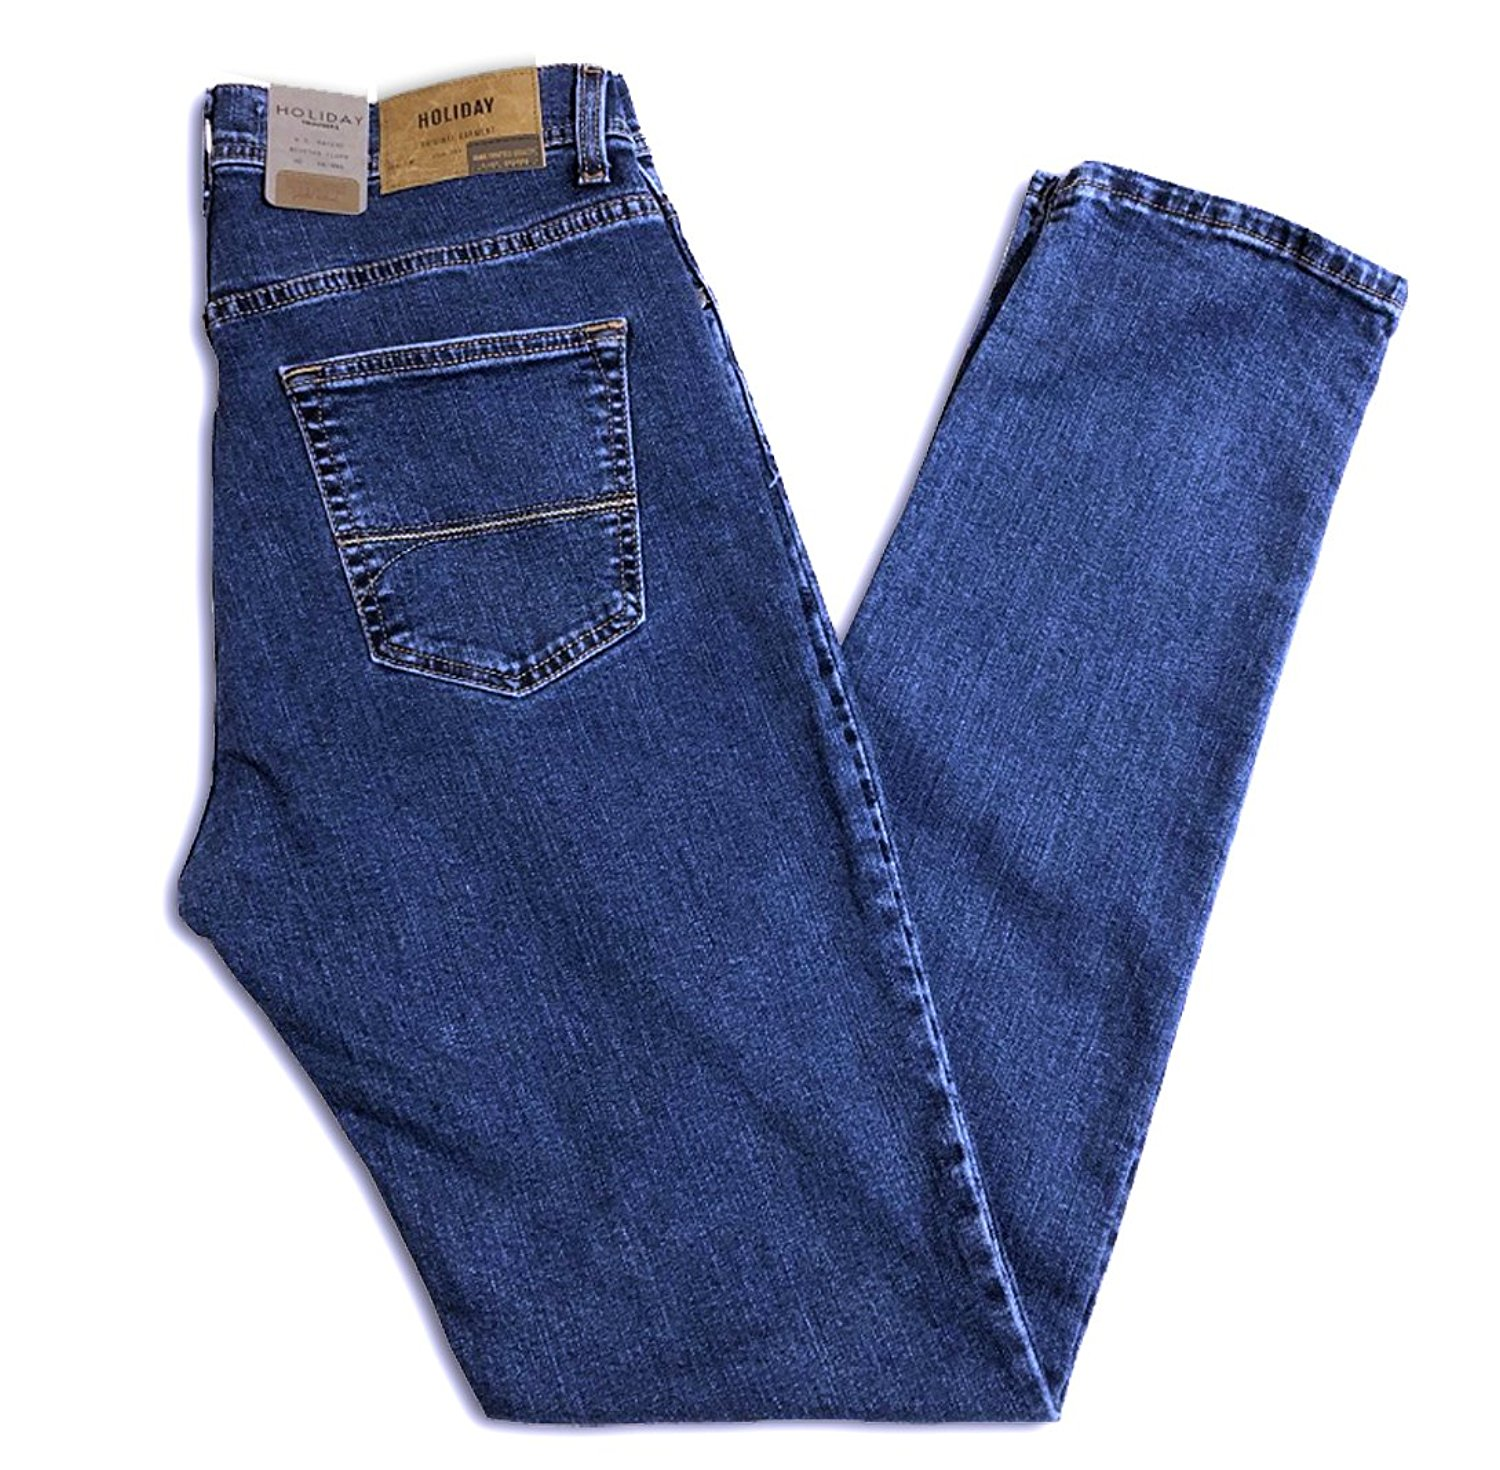 holiday jeans